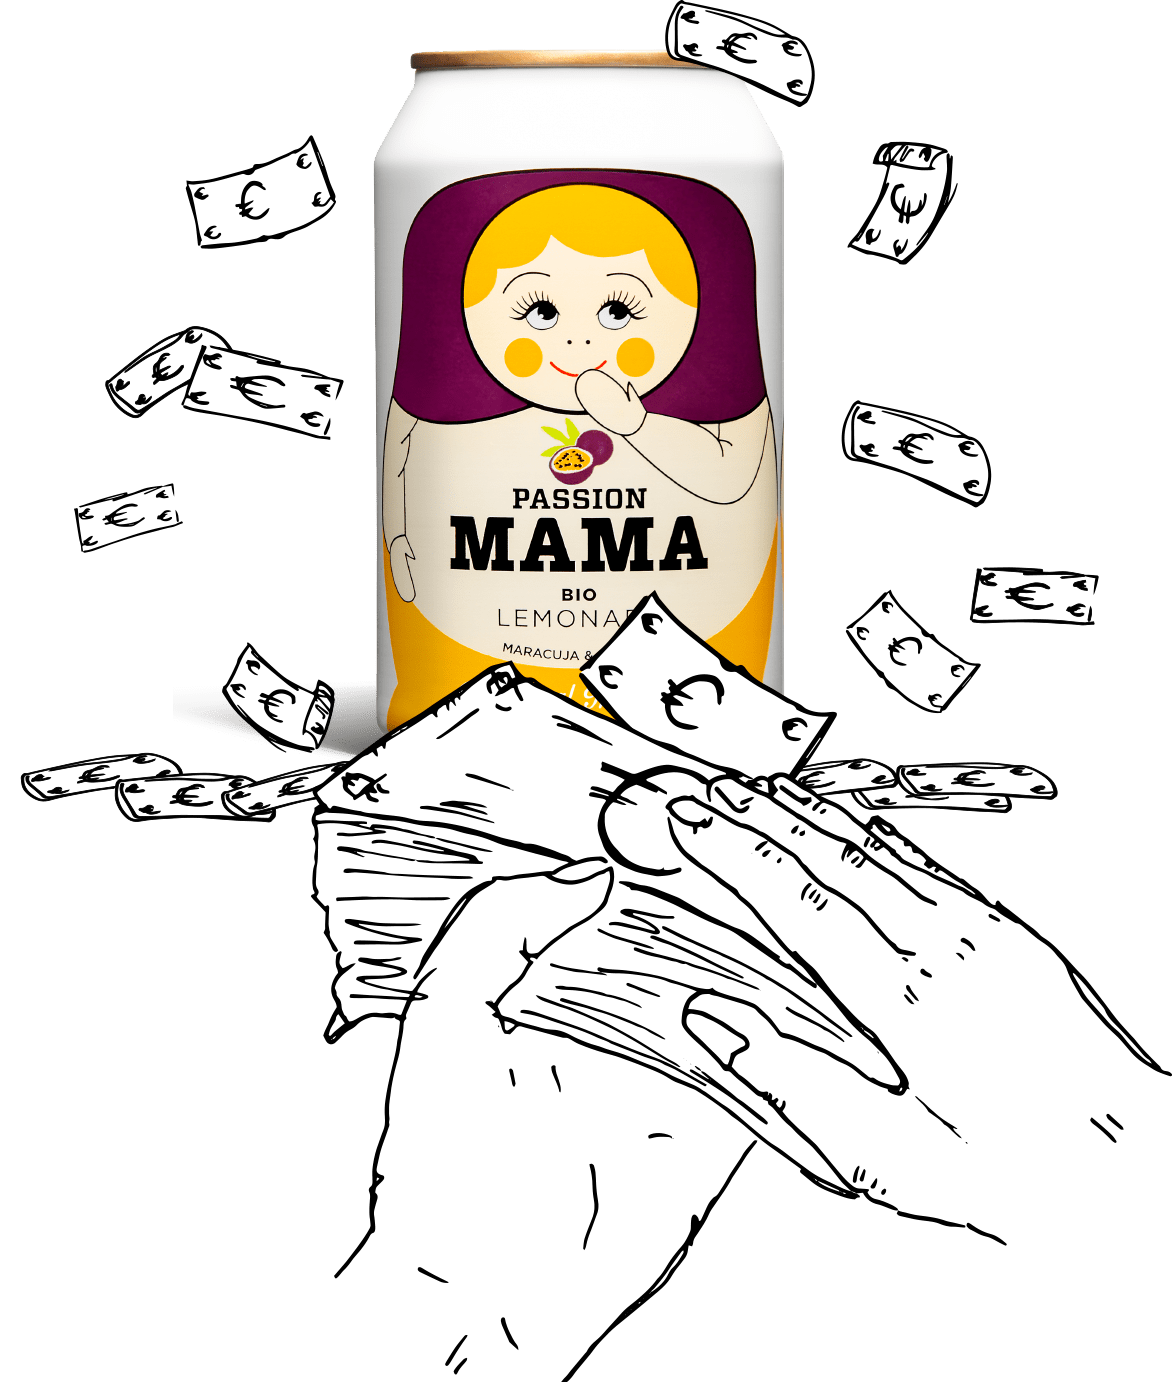 Passion Mama Lemonade Mobile